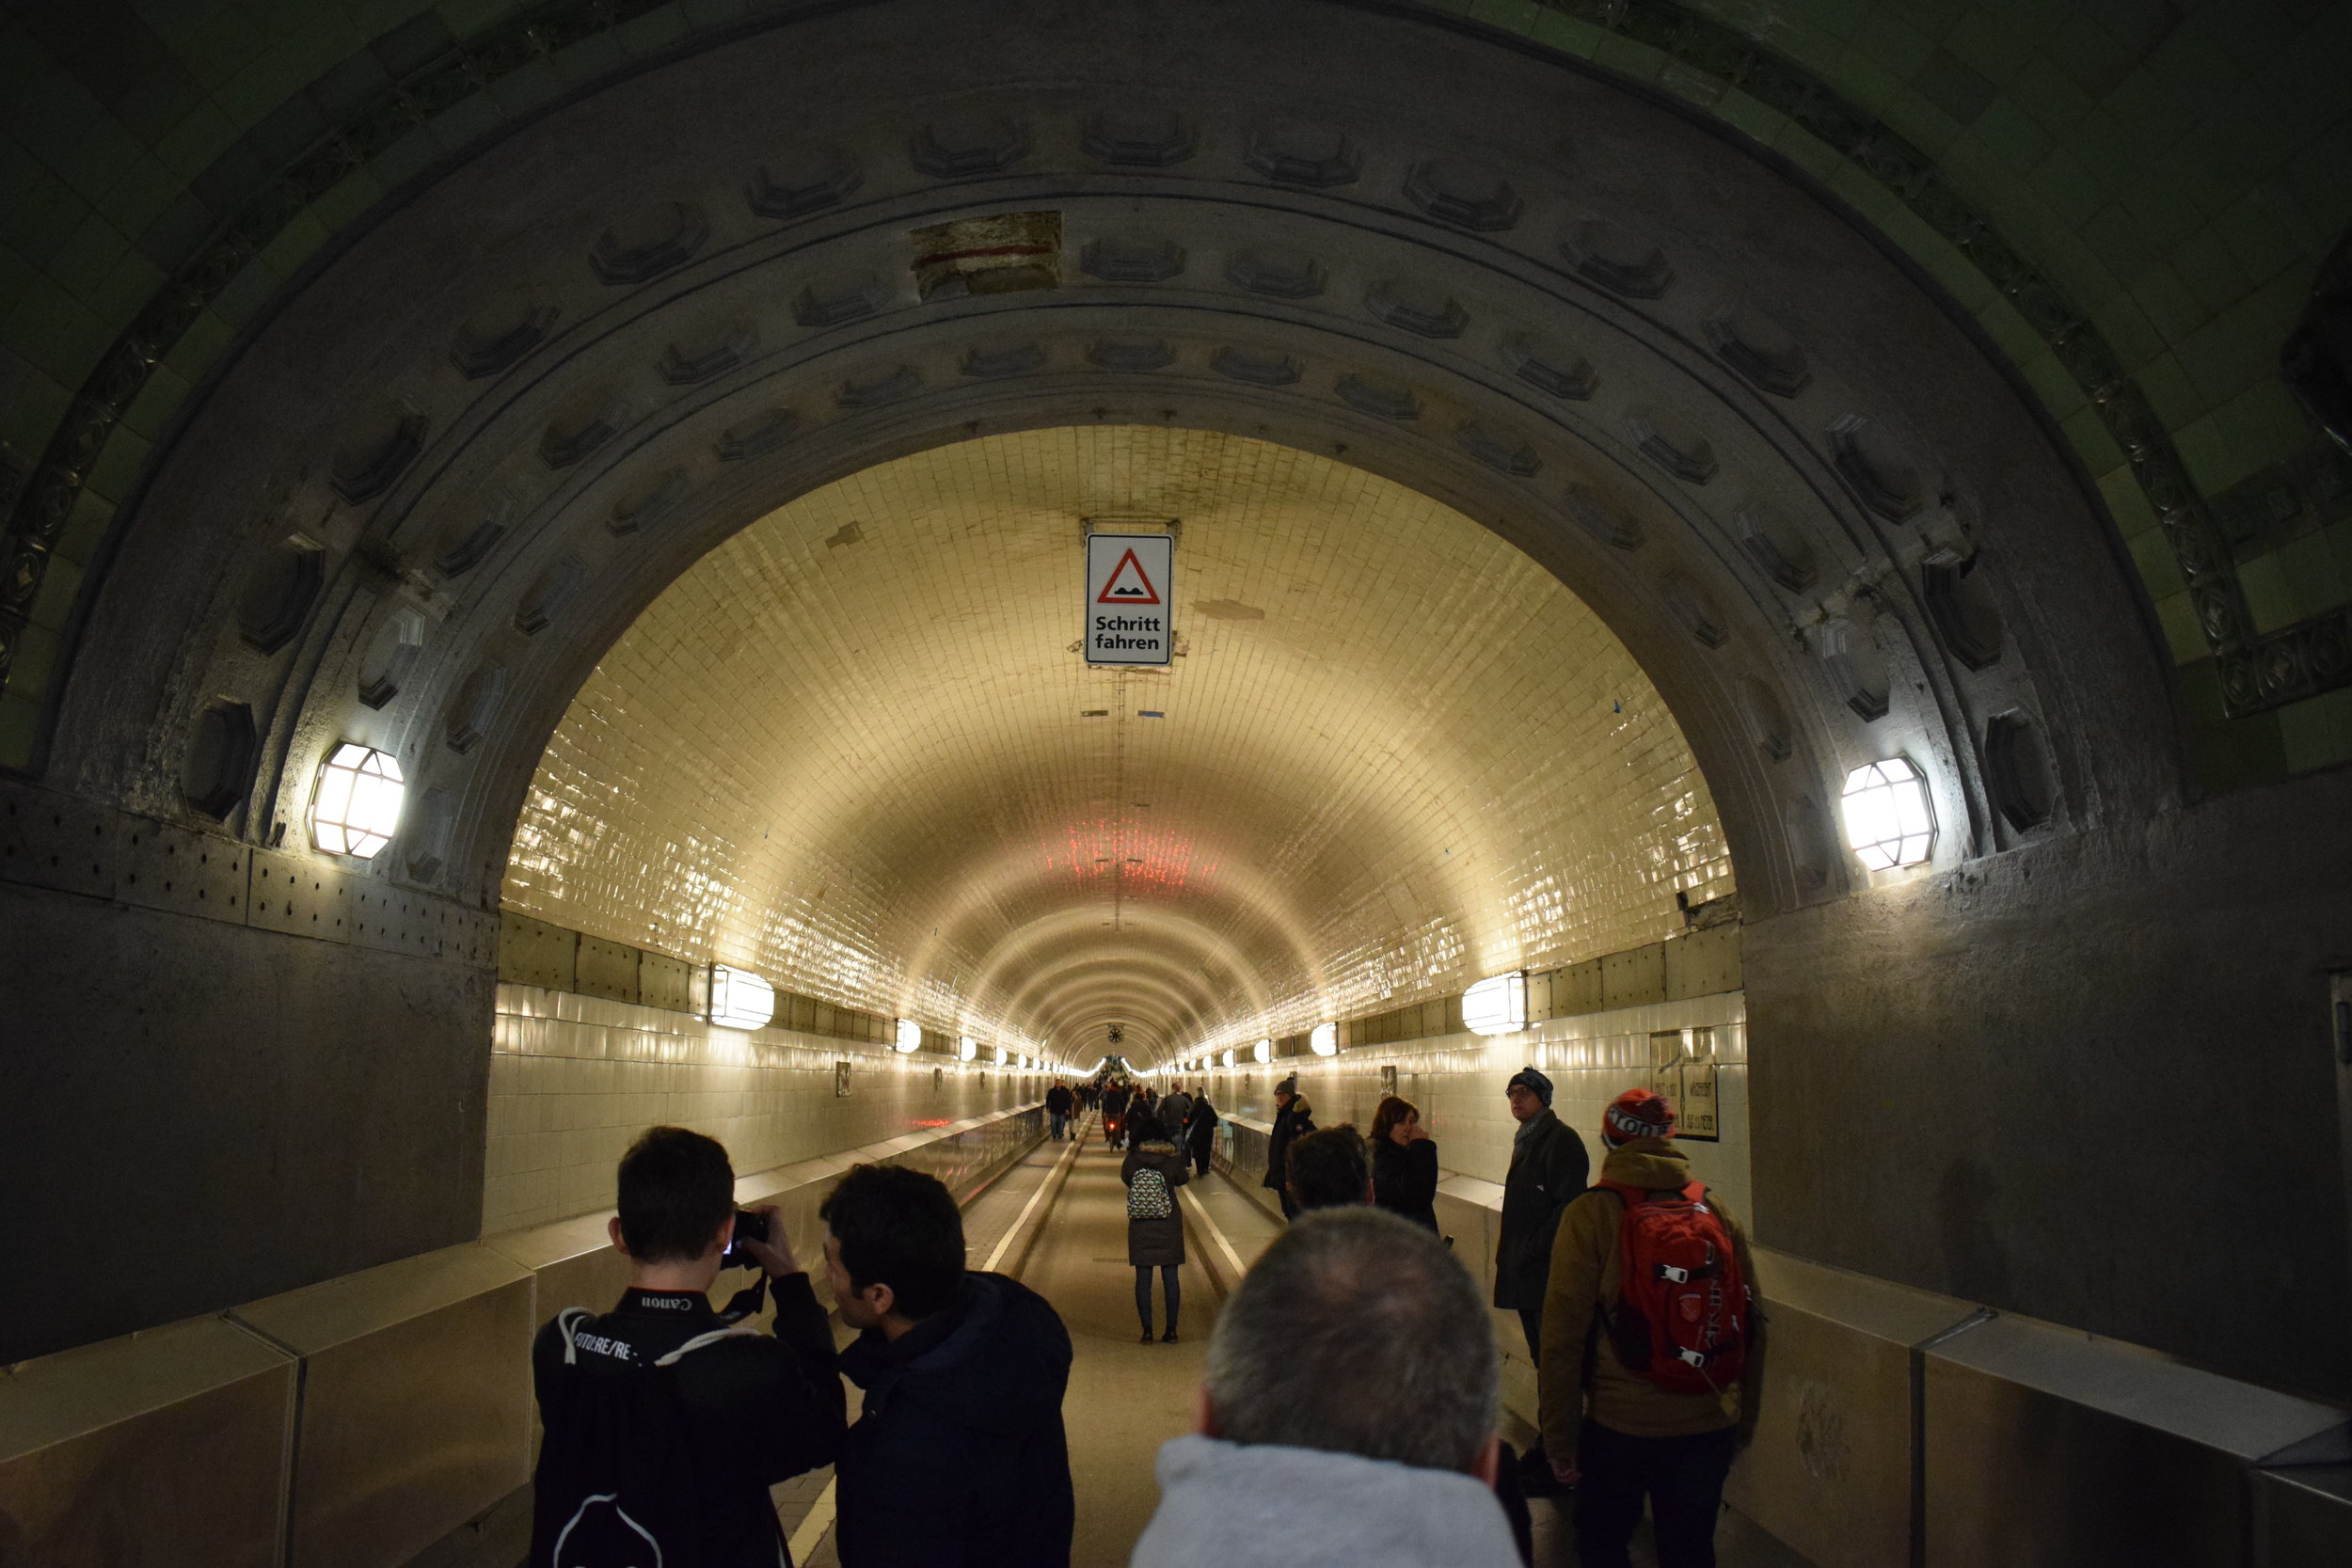 The Elbtunnel runs directly underneath the River Elbe.